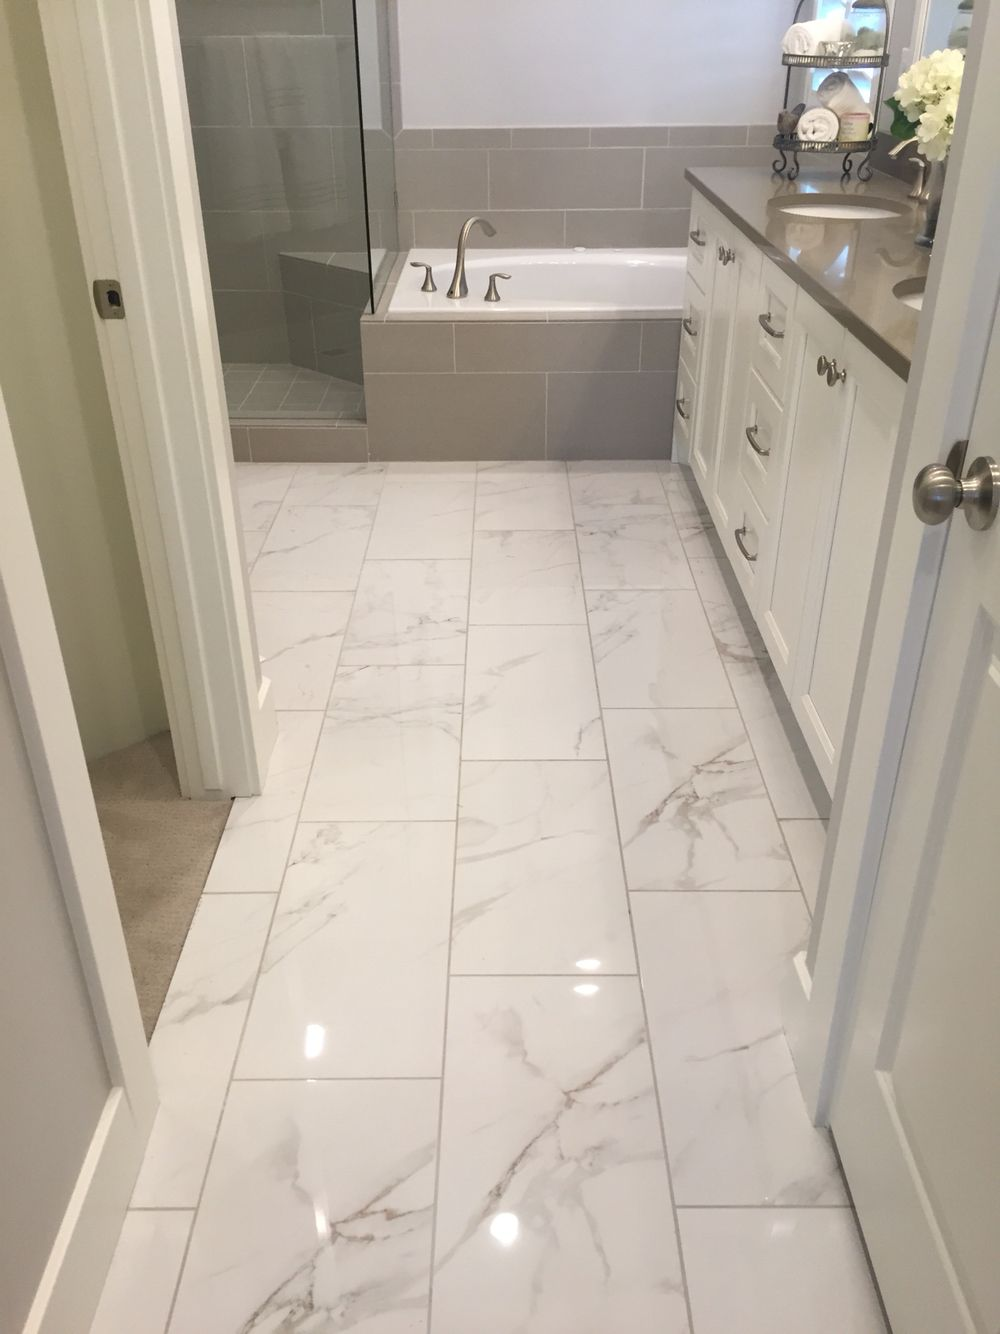 I like shiny tile. | the loo in 2019 | Marble tile ...